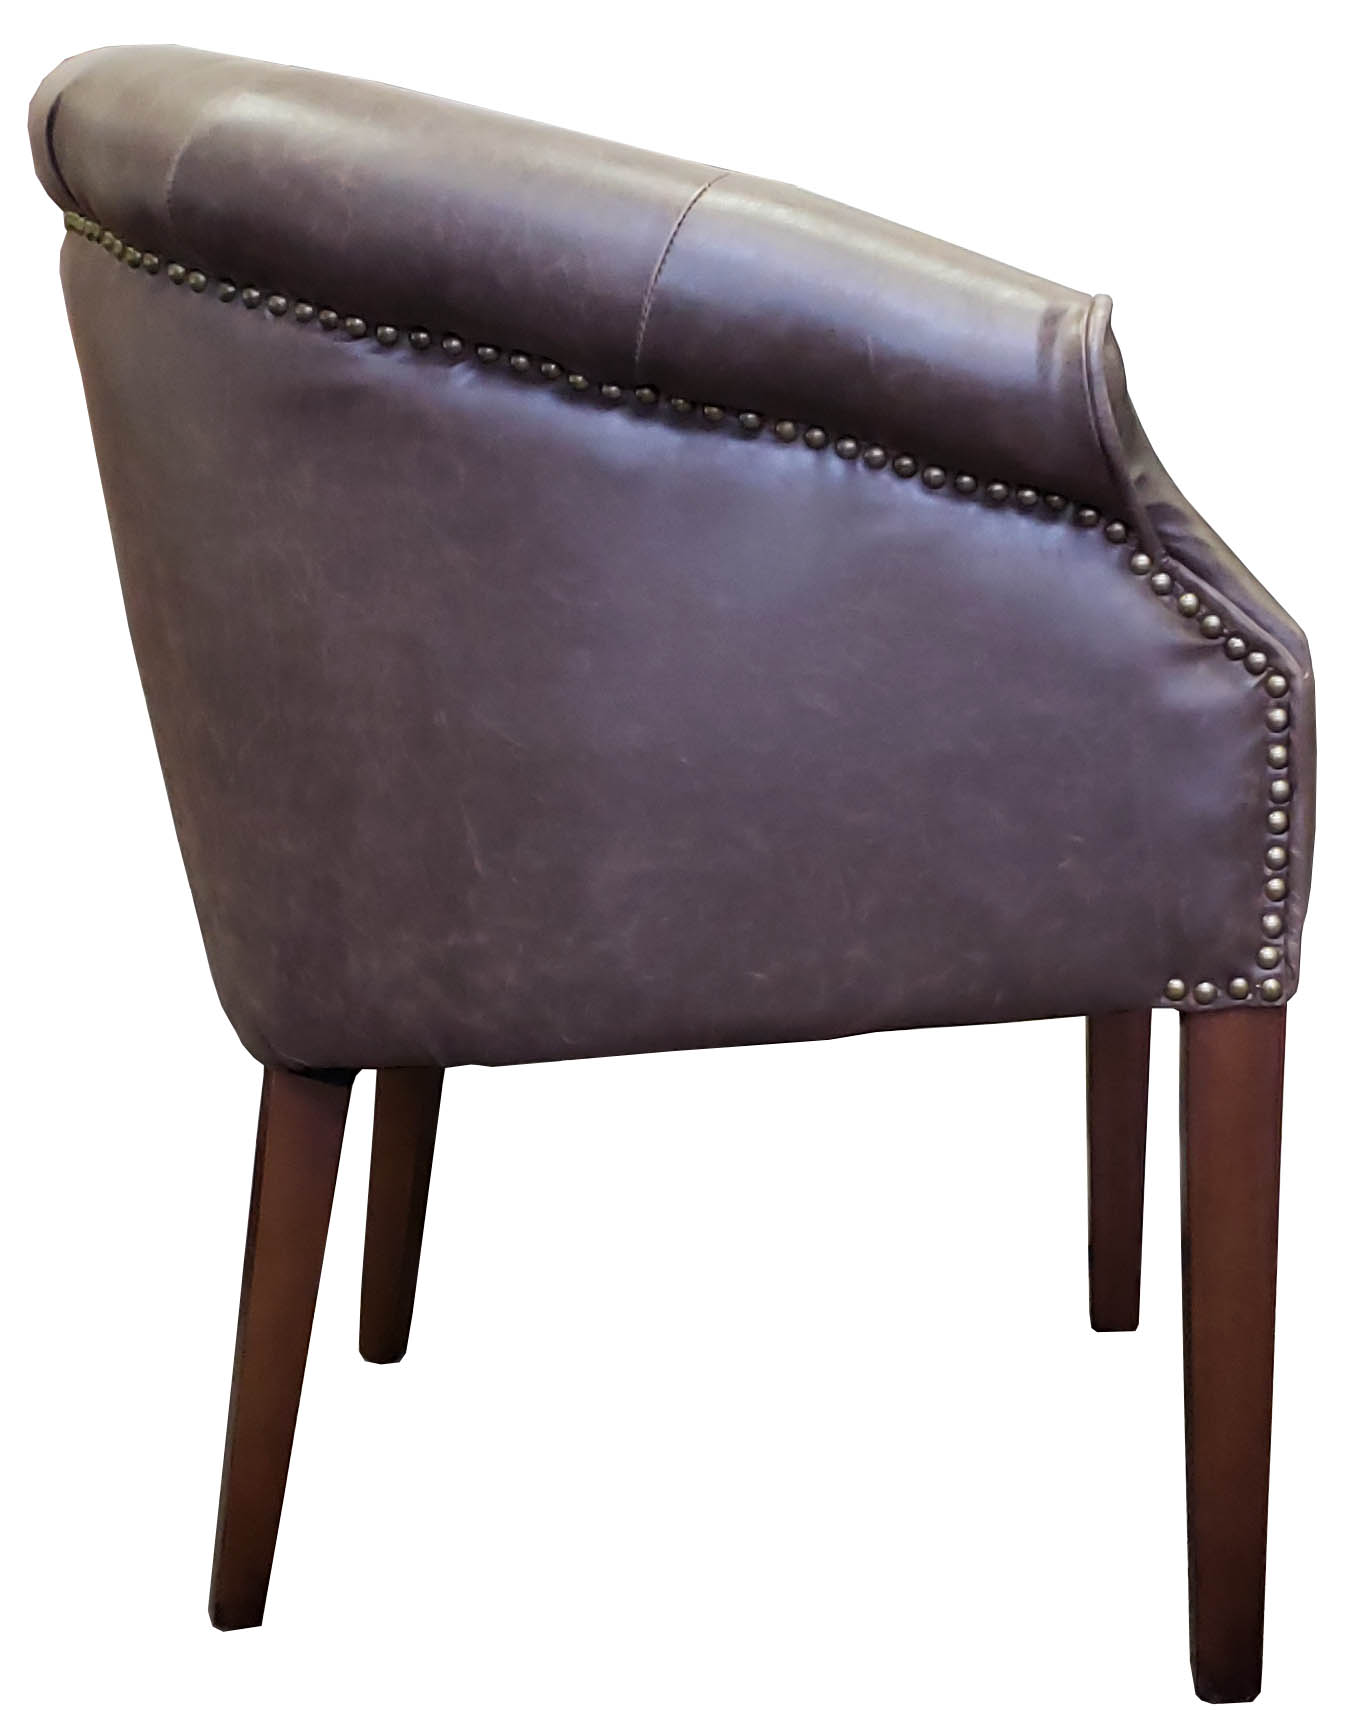 Restaurant Chairs Stools Amp Booths Antique Leather Tub